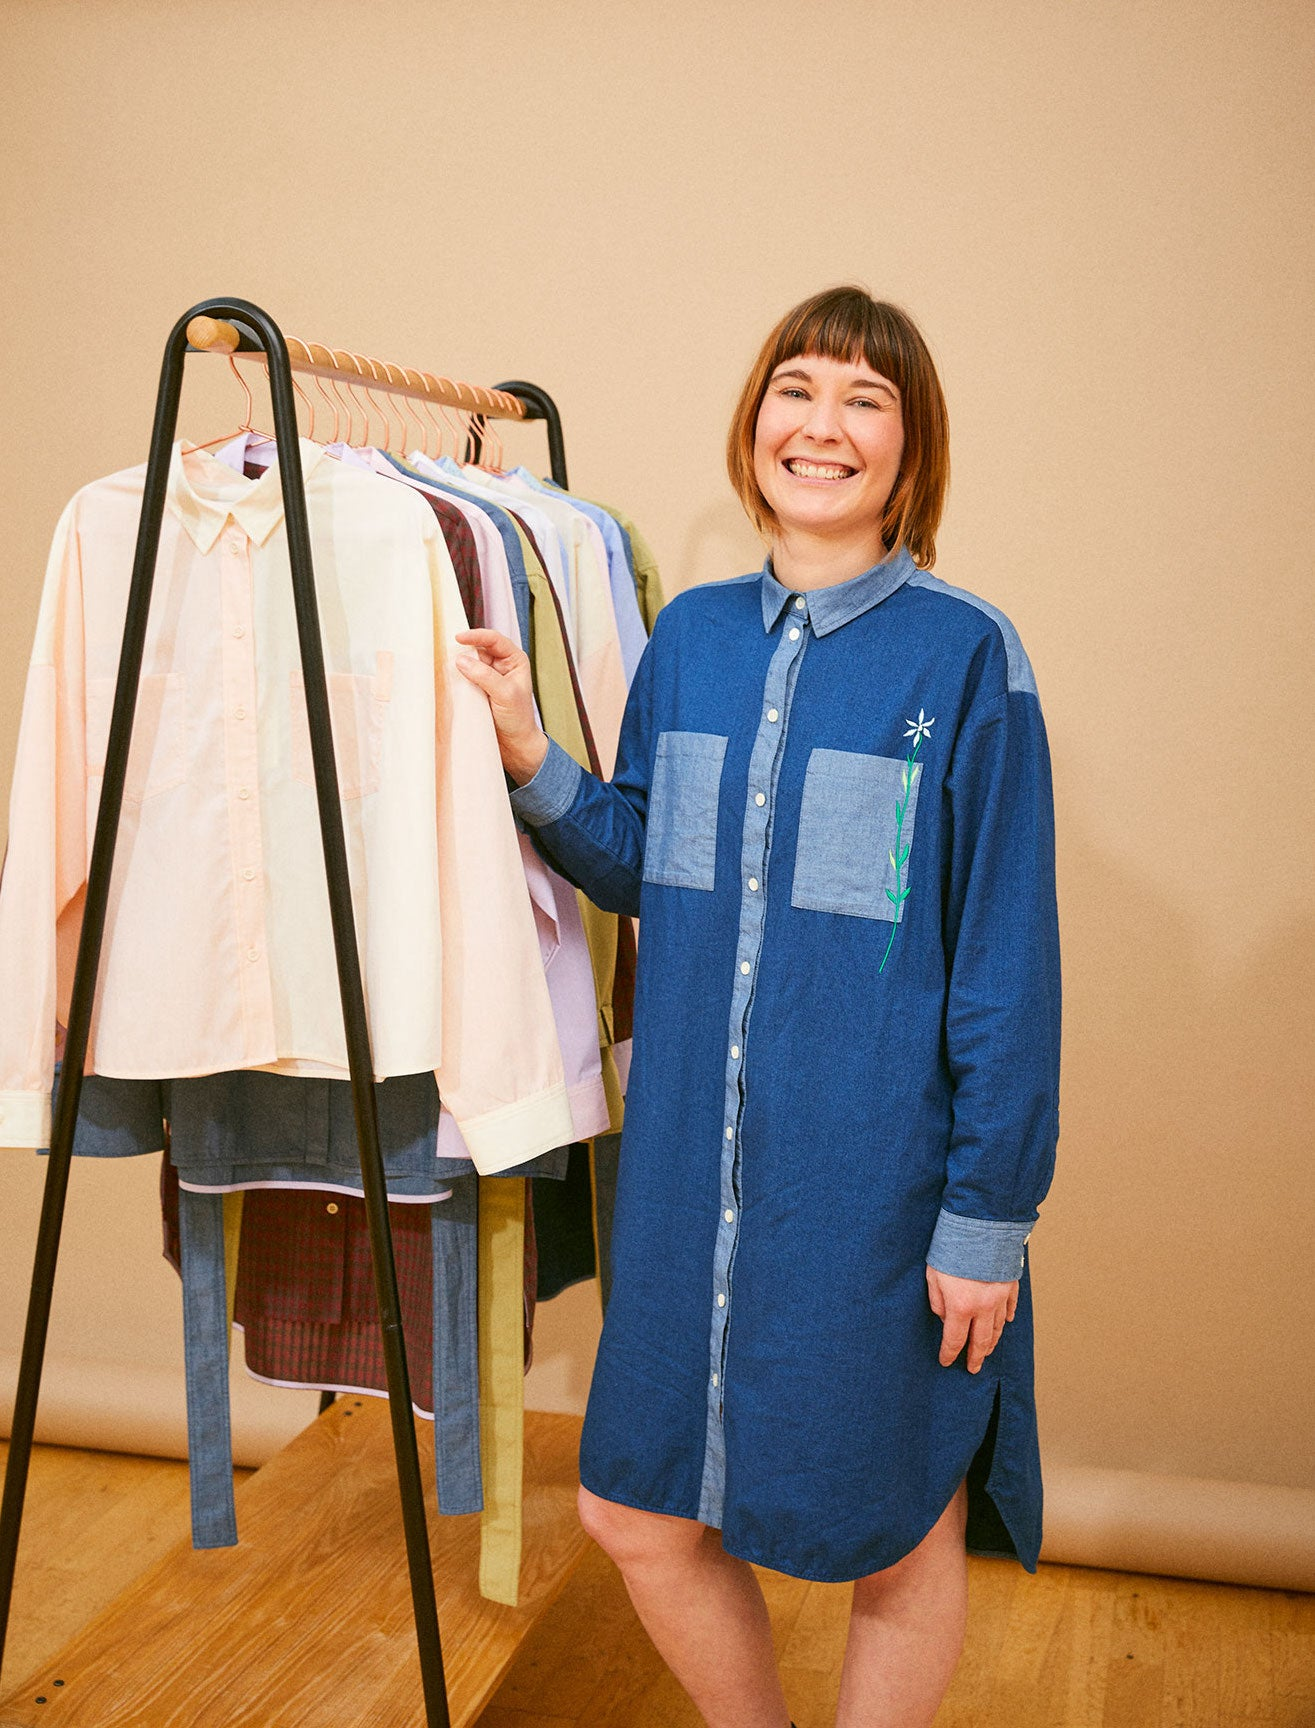 Slow fashion and ethical brand Saywood's founder Harriet, standing next to a rail of women's clothing - shirts from the first collection.